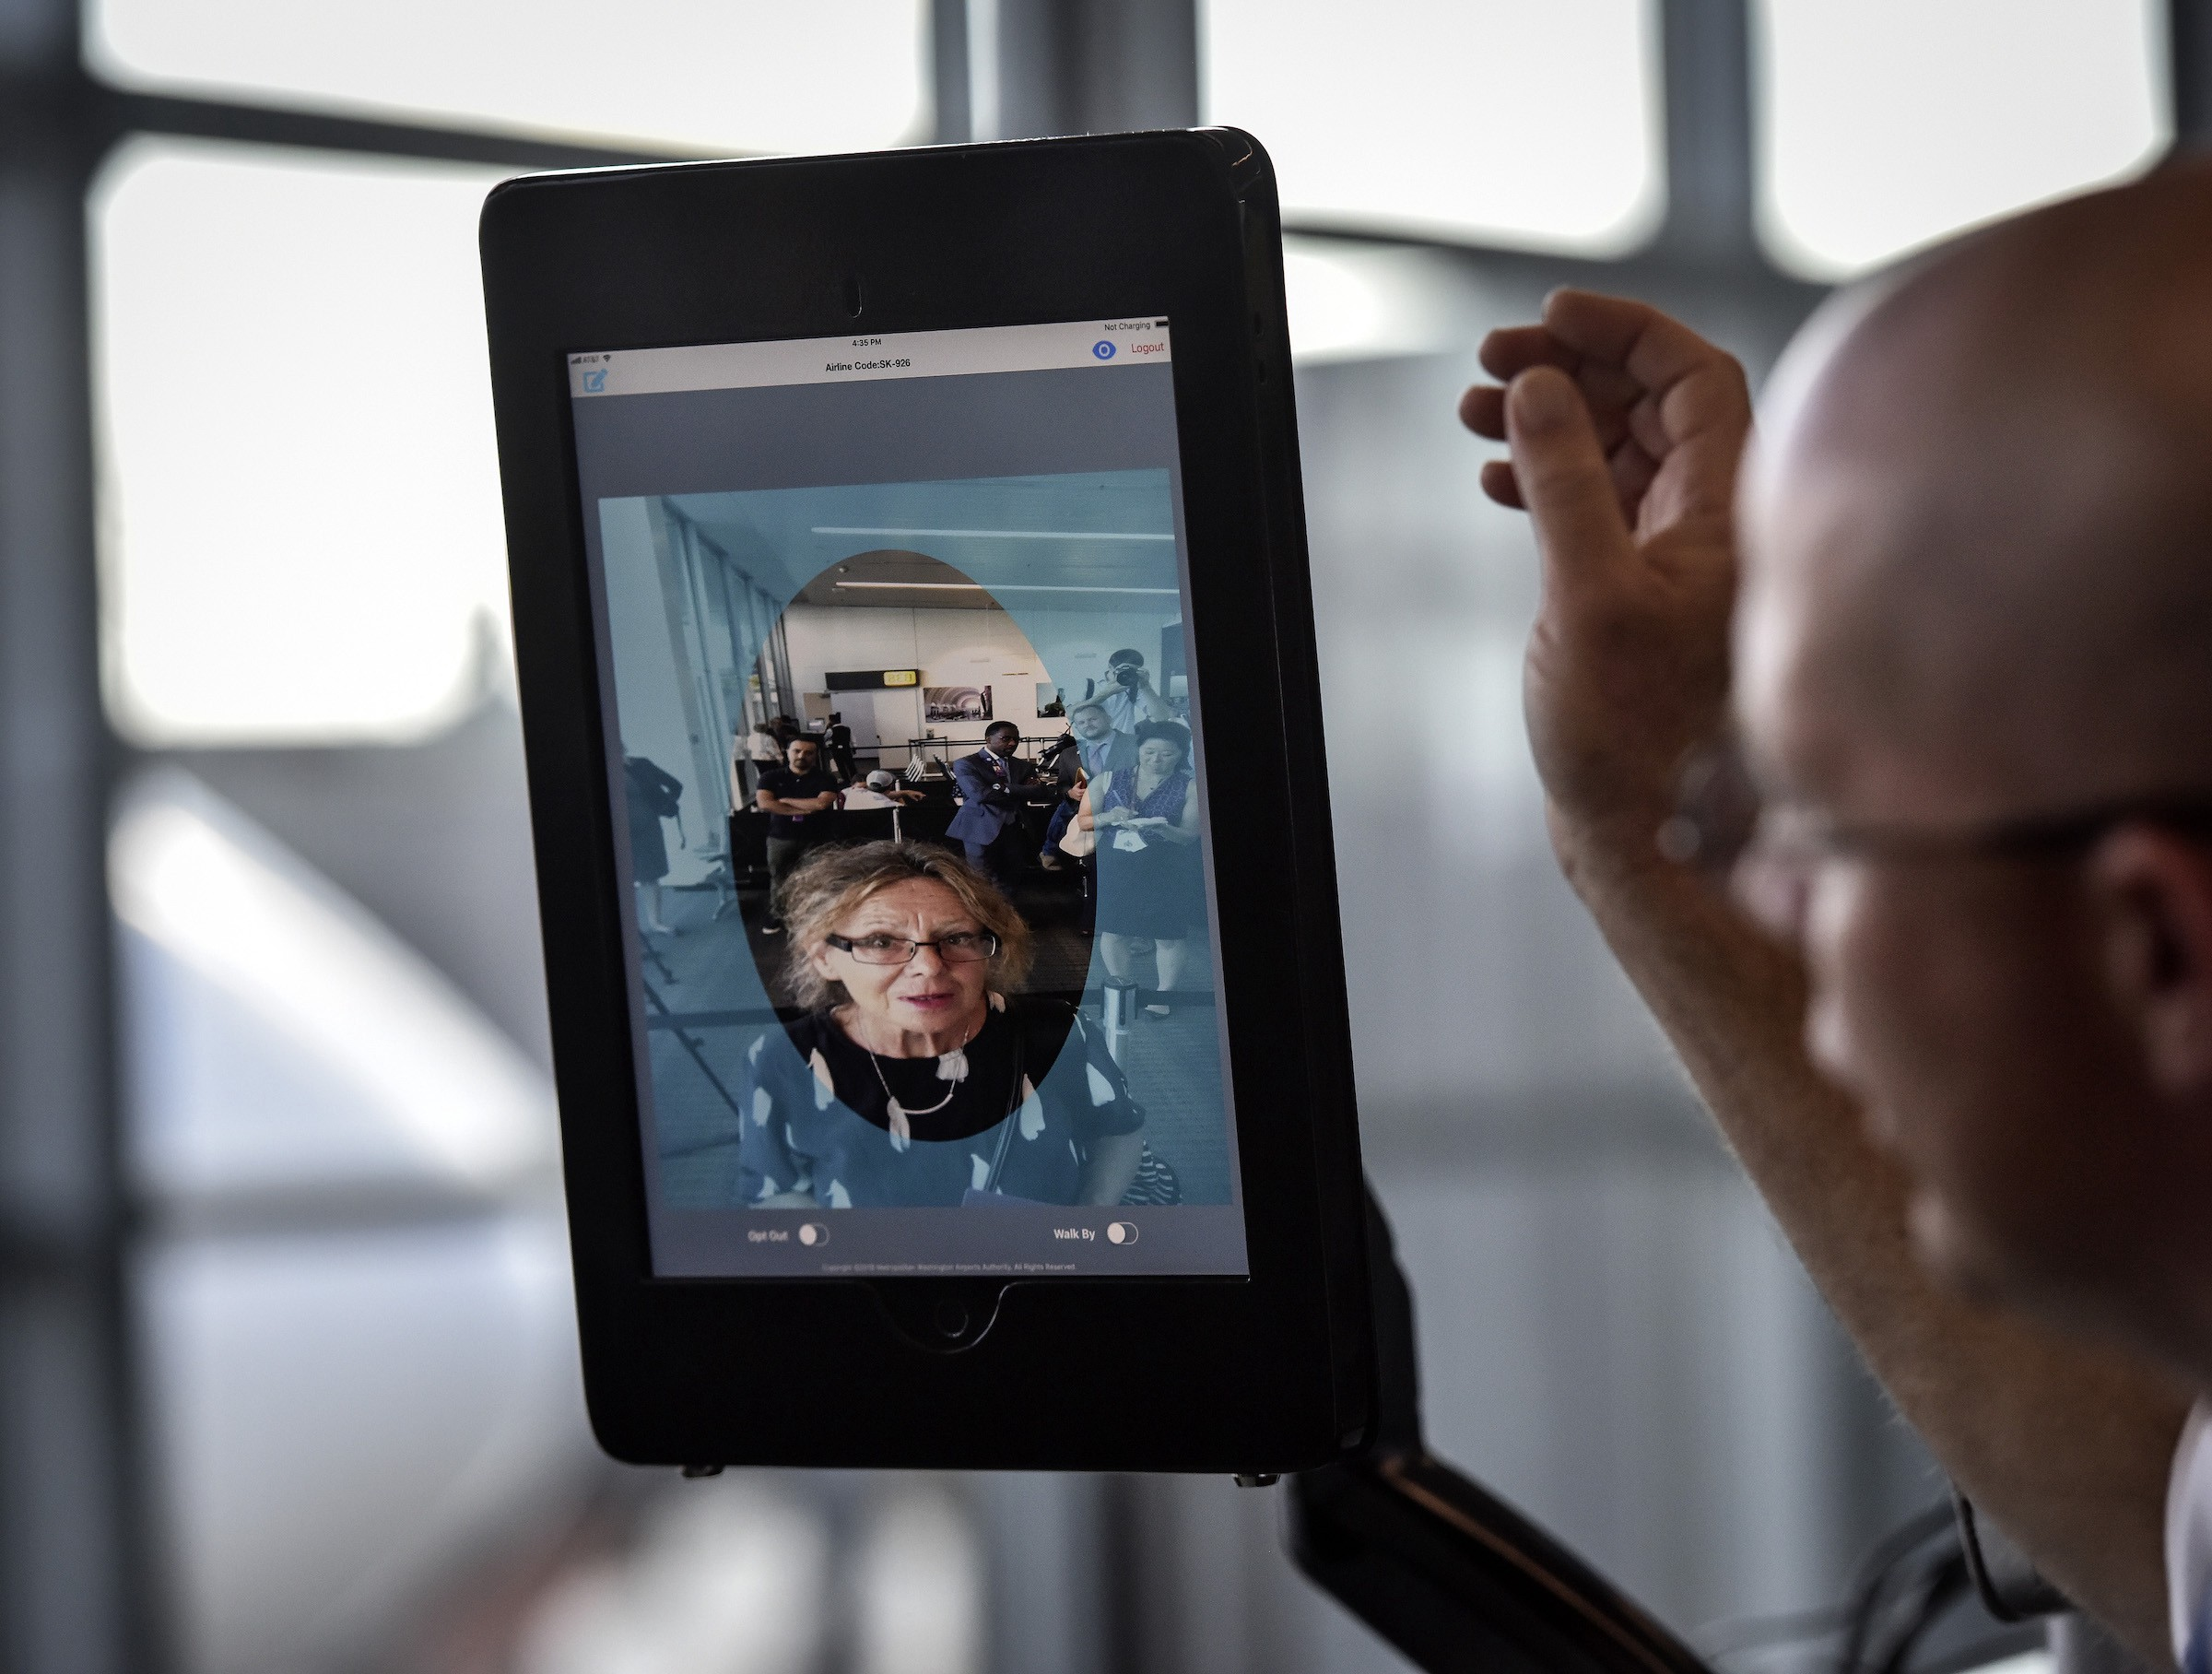 Don't Smile for Surveillance: Why Airport Face Scans Are a Privacy Trap